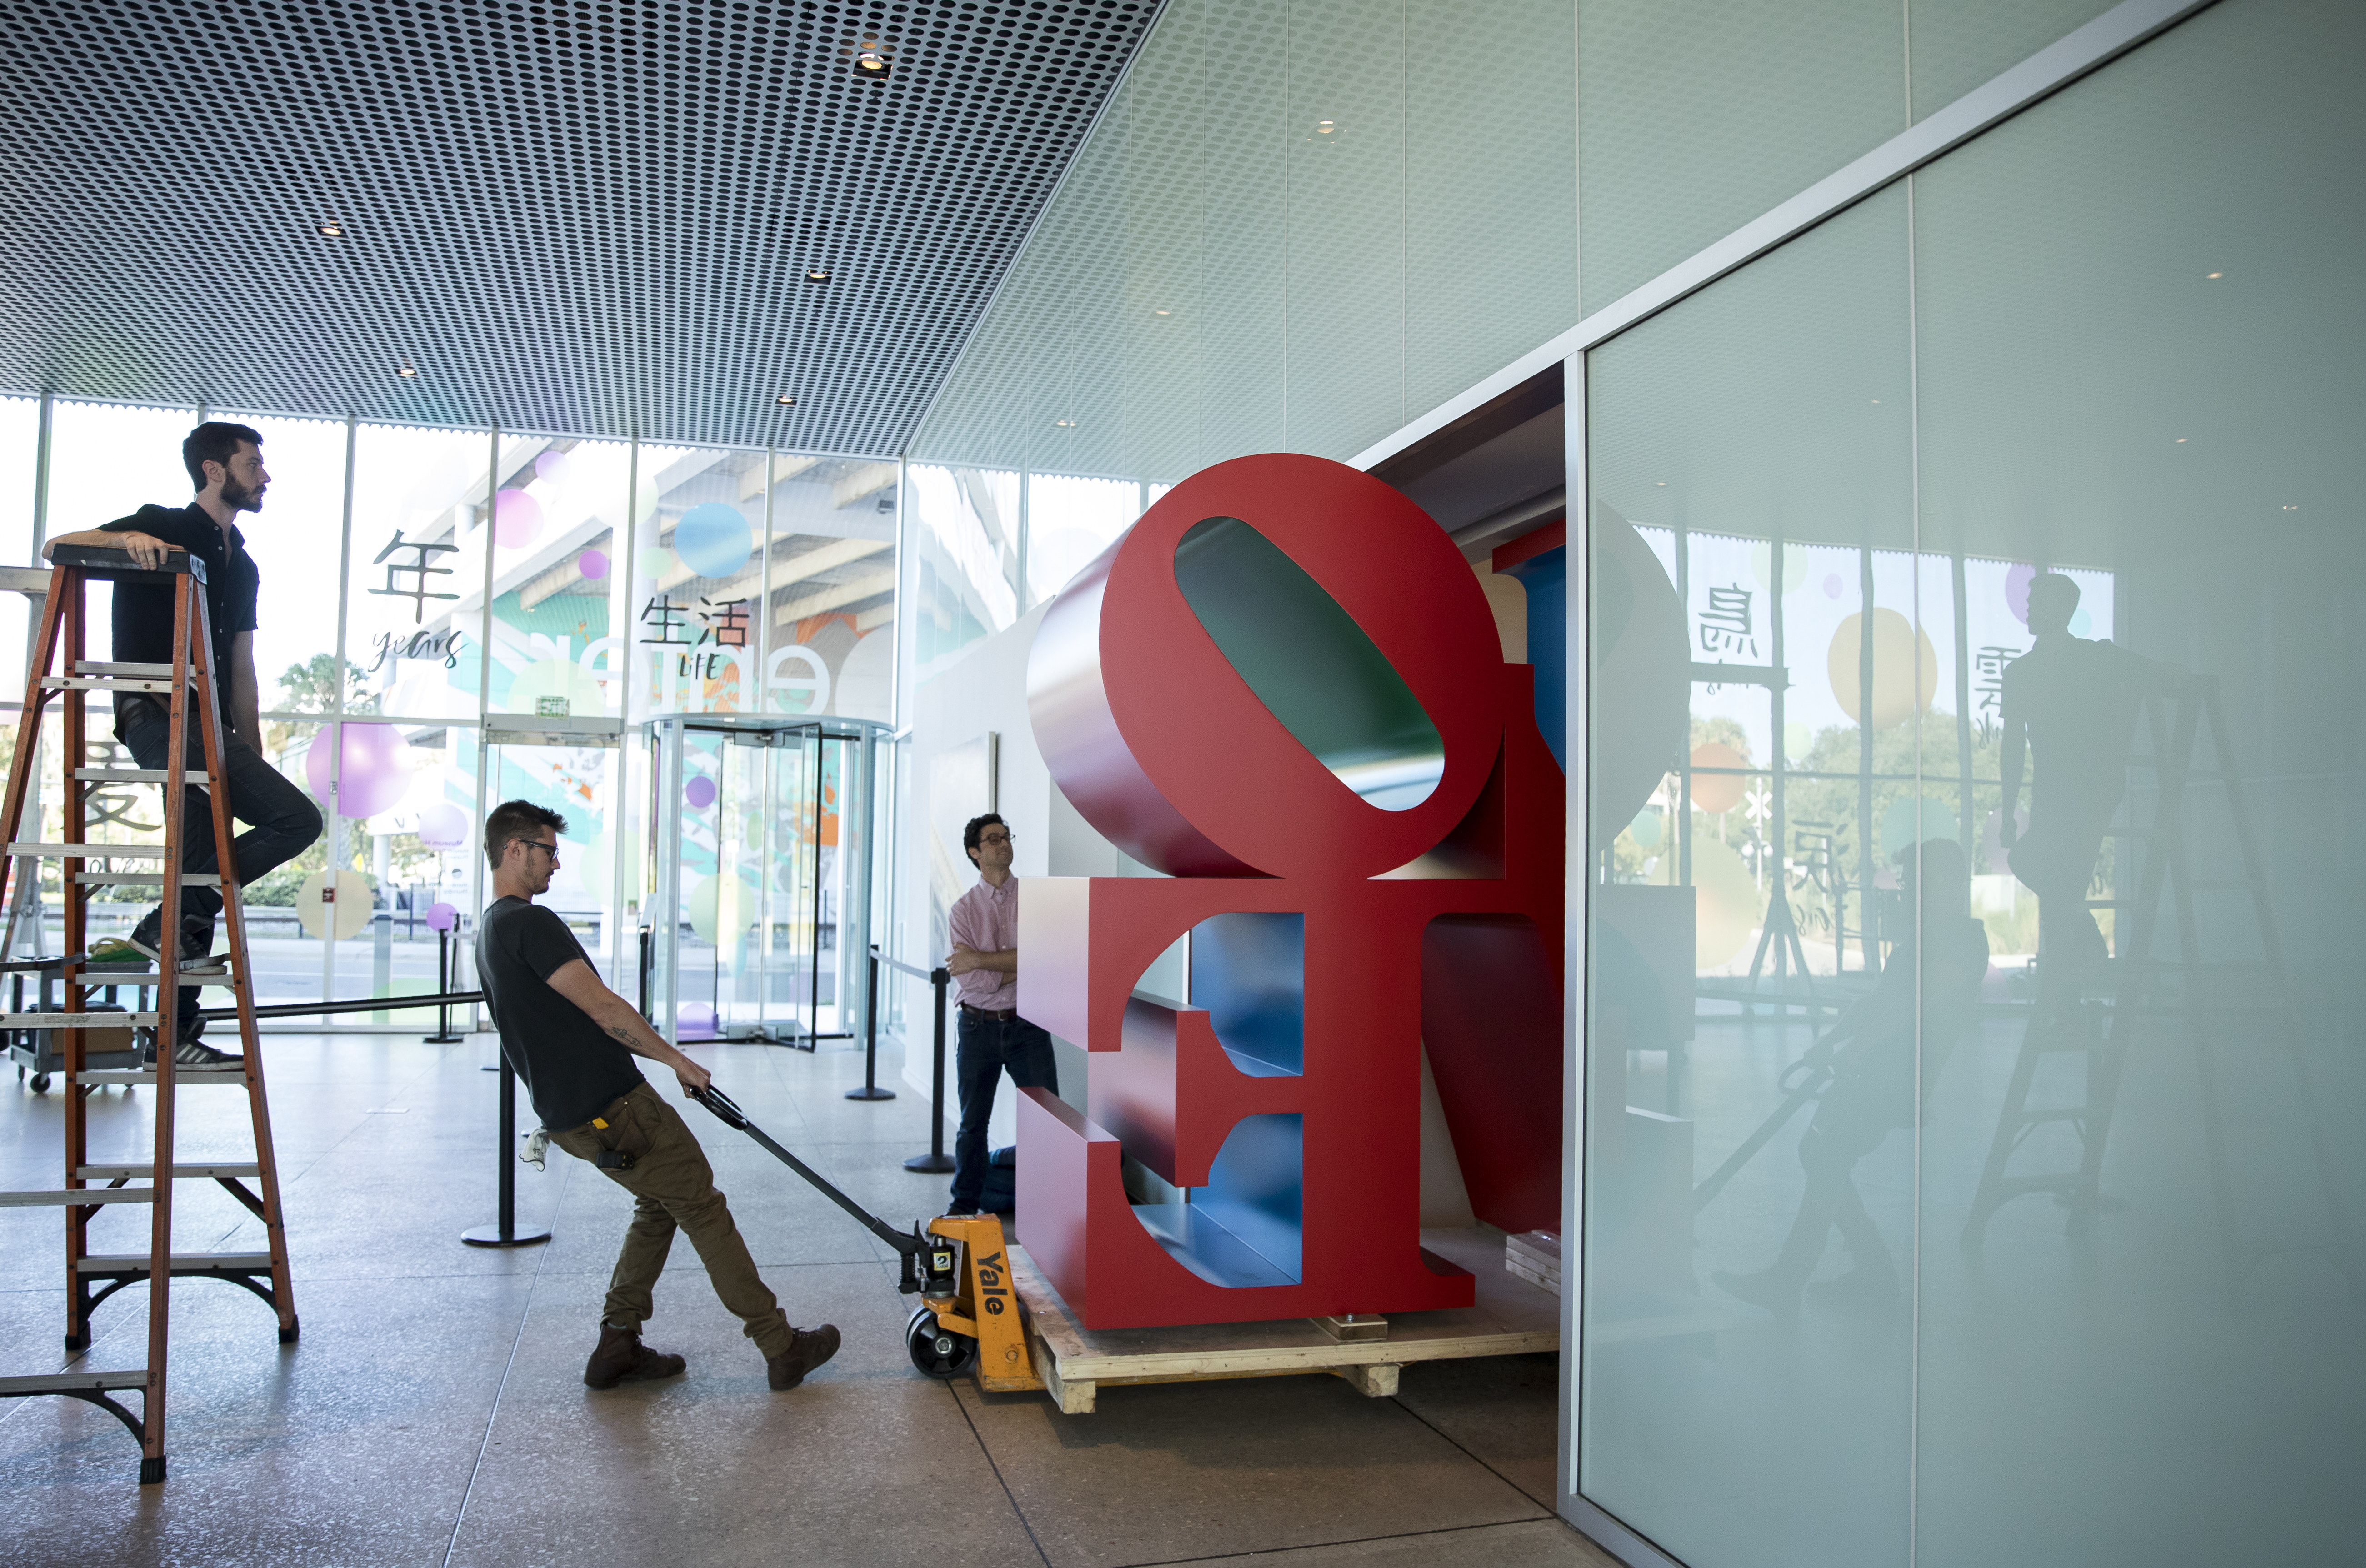 Artist Robert Indiana's LOVE sculpture visits the Tampa Museum of Art